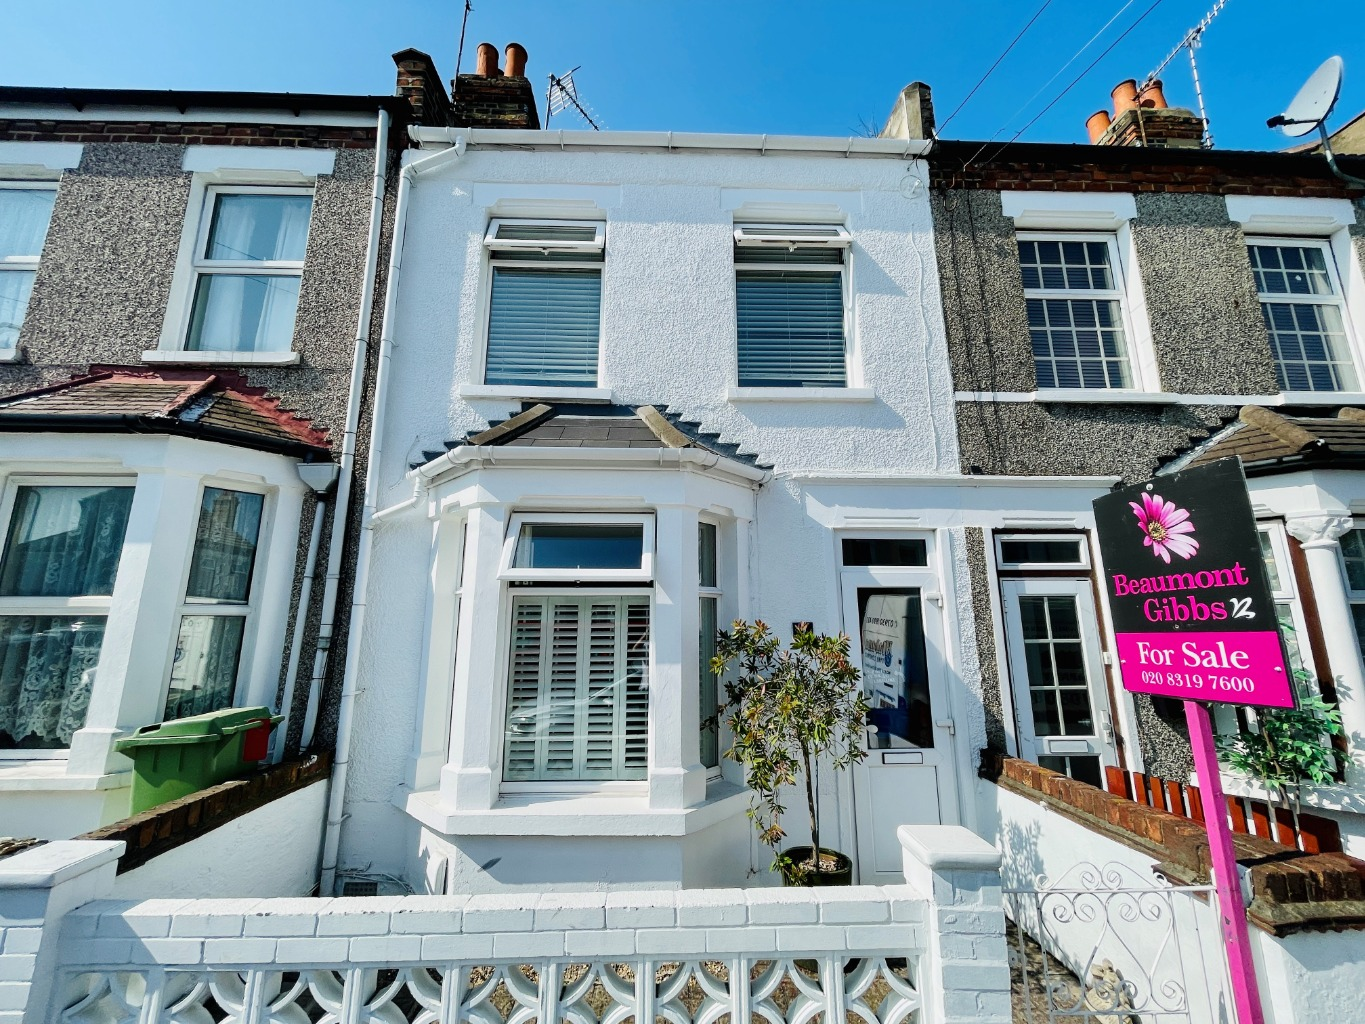 2 bed semi-detached house for sale in Alabama Street, London, SE18